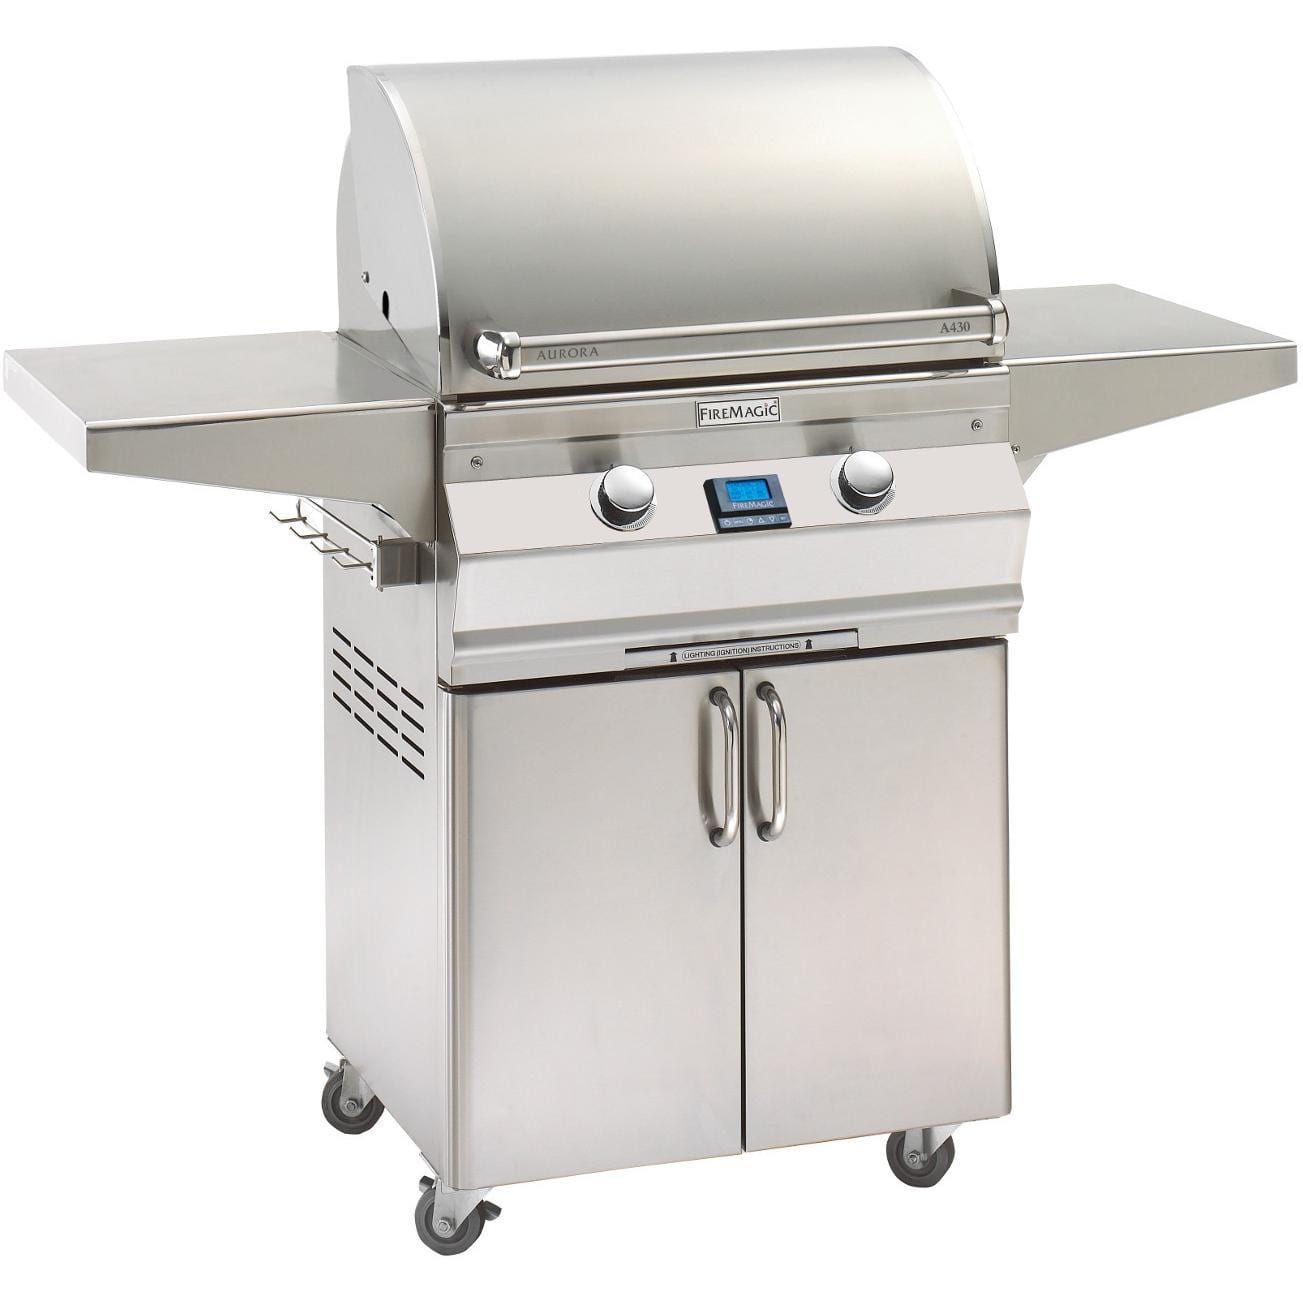 Fire Magic Aurora A430s Natural Gas Grill